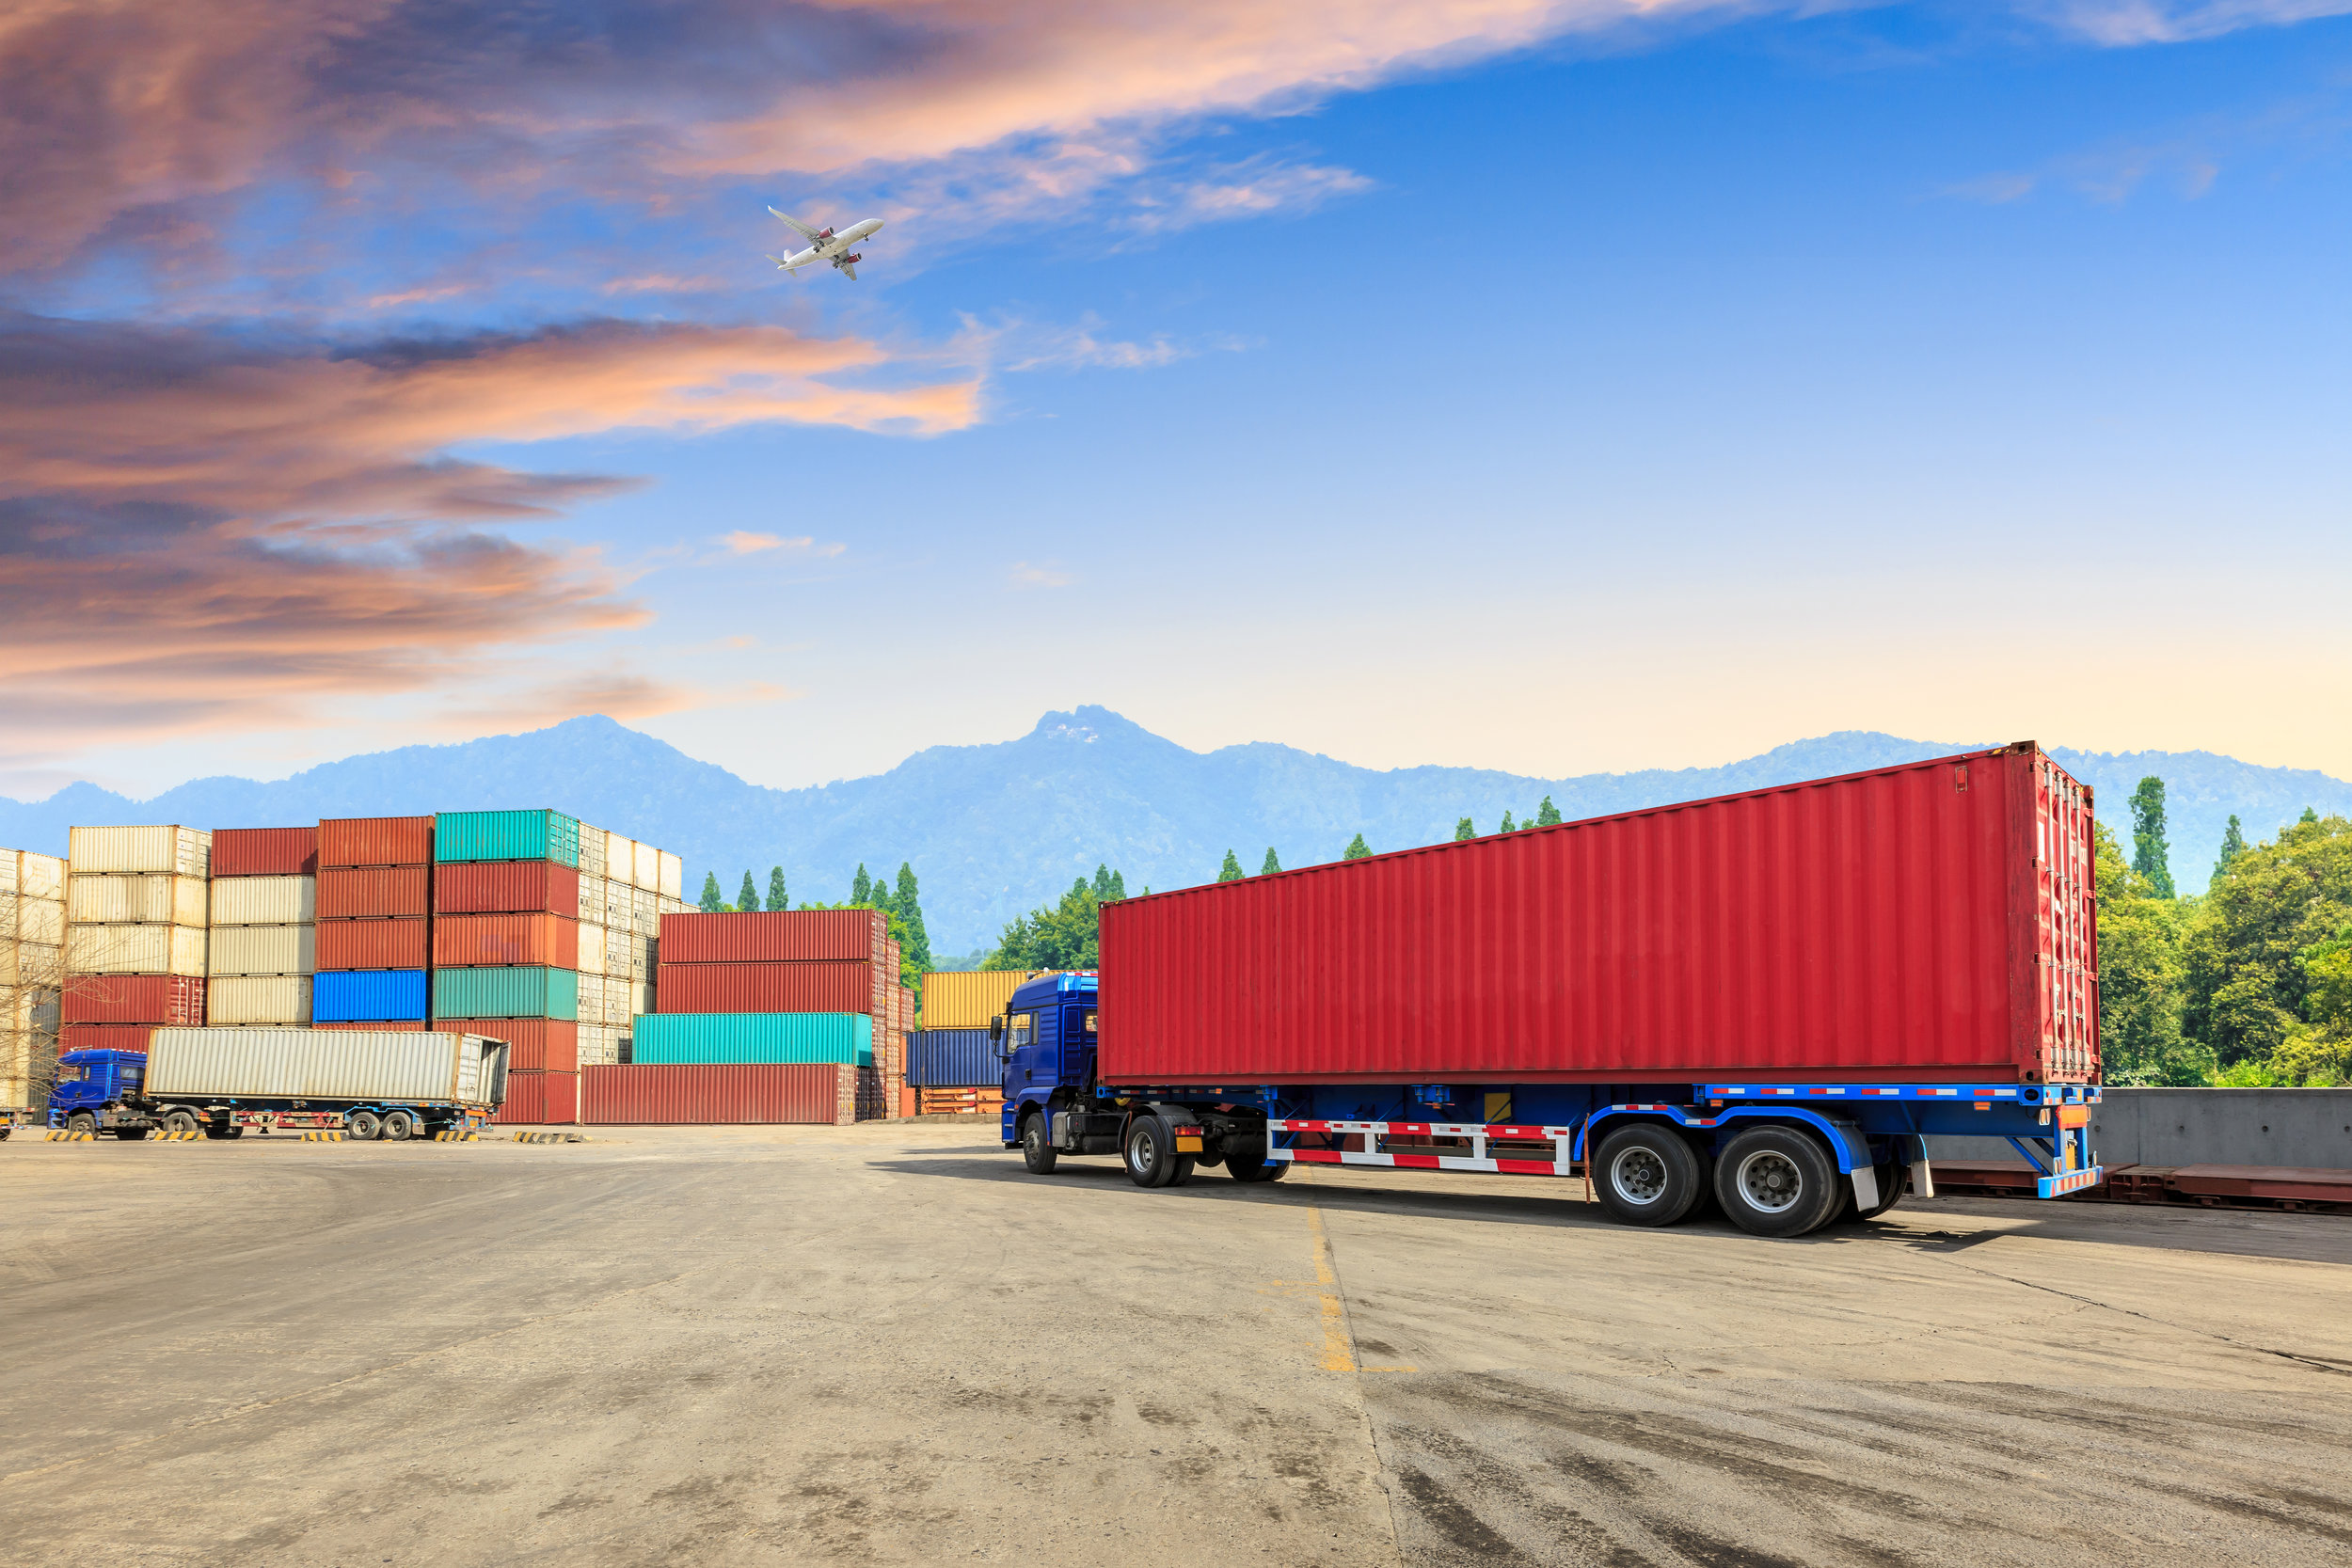 How to Get Freight From Shippers